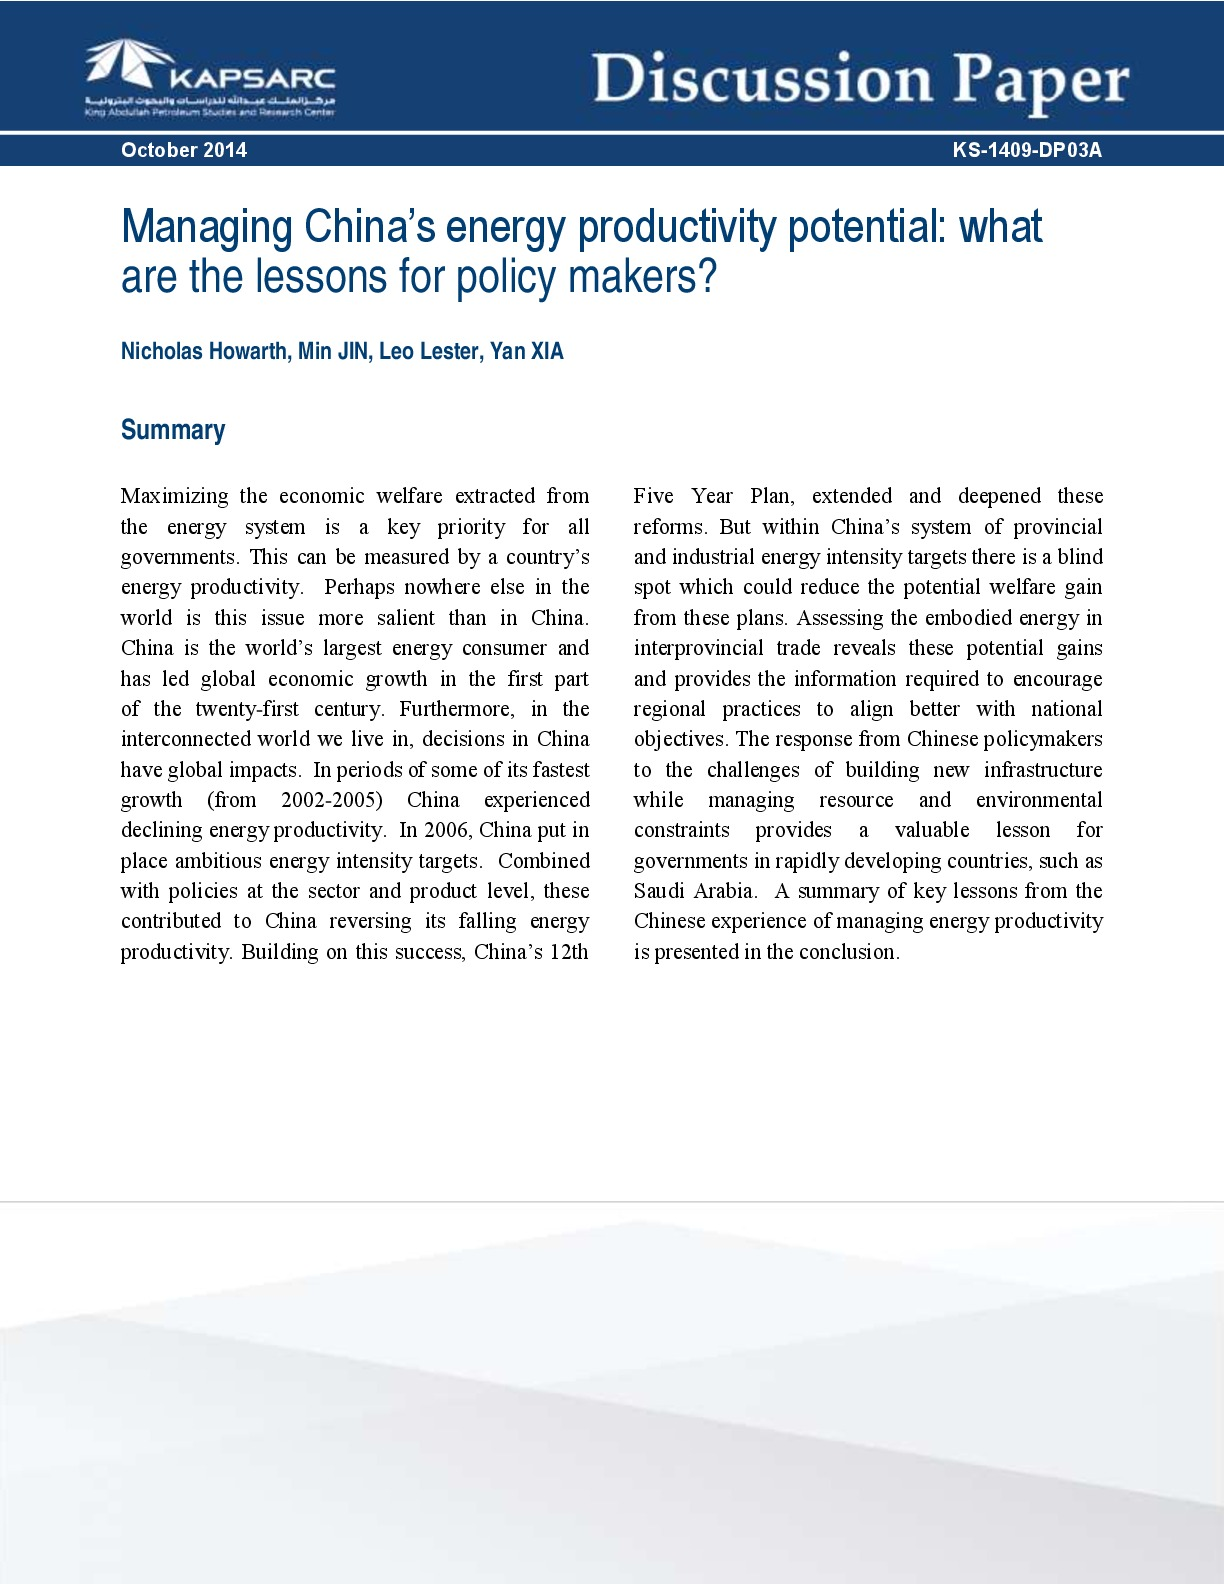 Managing China's energy productivity potential: what lessons for policy makers